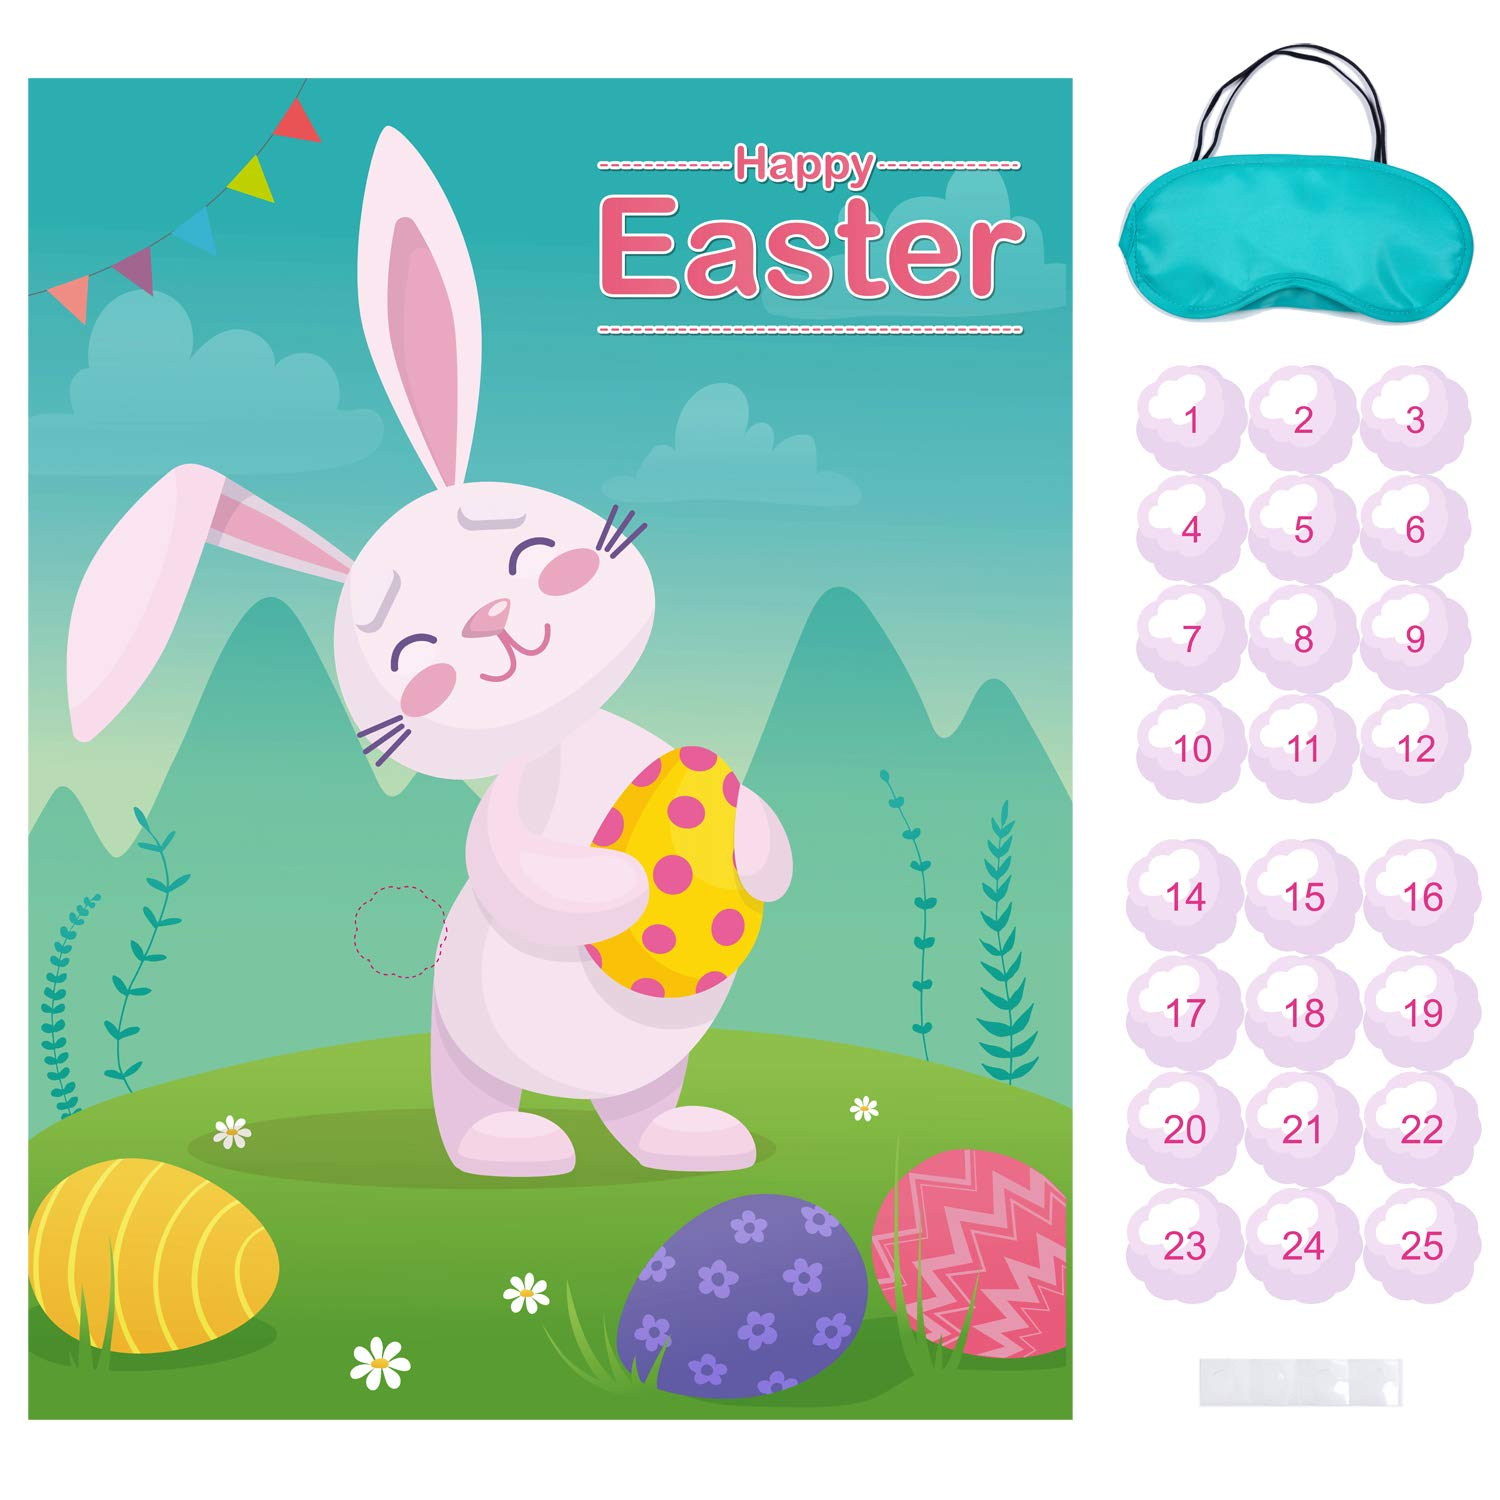 Easter party clipart picture transparent download MISS FANTASY Easter Games Pin The Tail on The Bunny Easter Egg Hunt  Activities Easter Party Decorations Favors Supplies for Kids Adults Include  24 ... picture transparent download